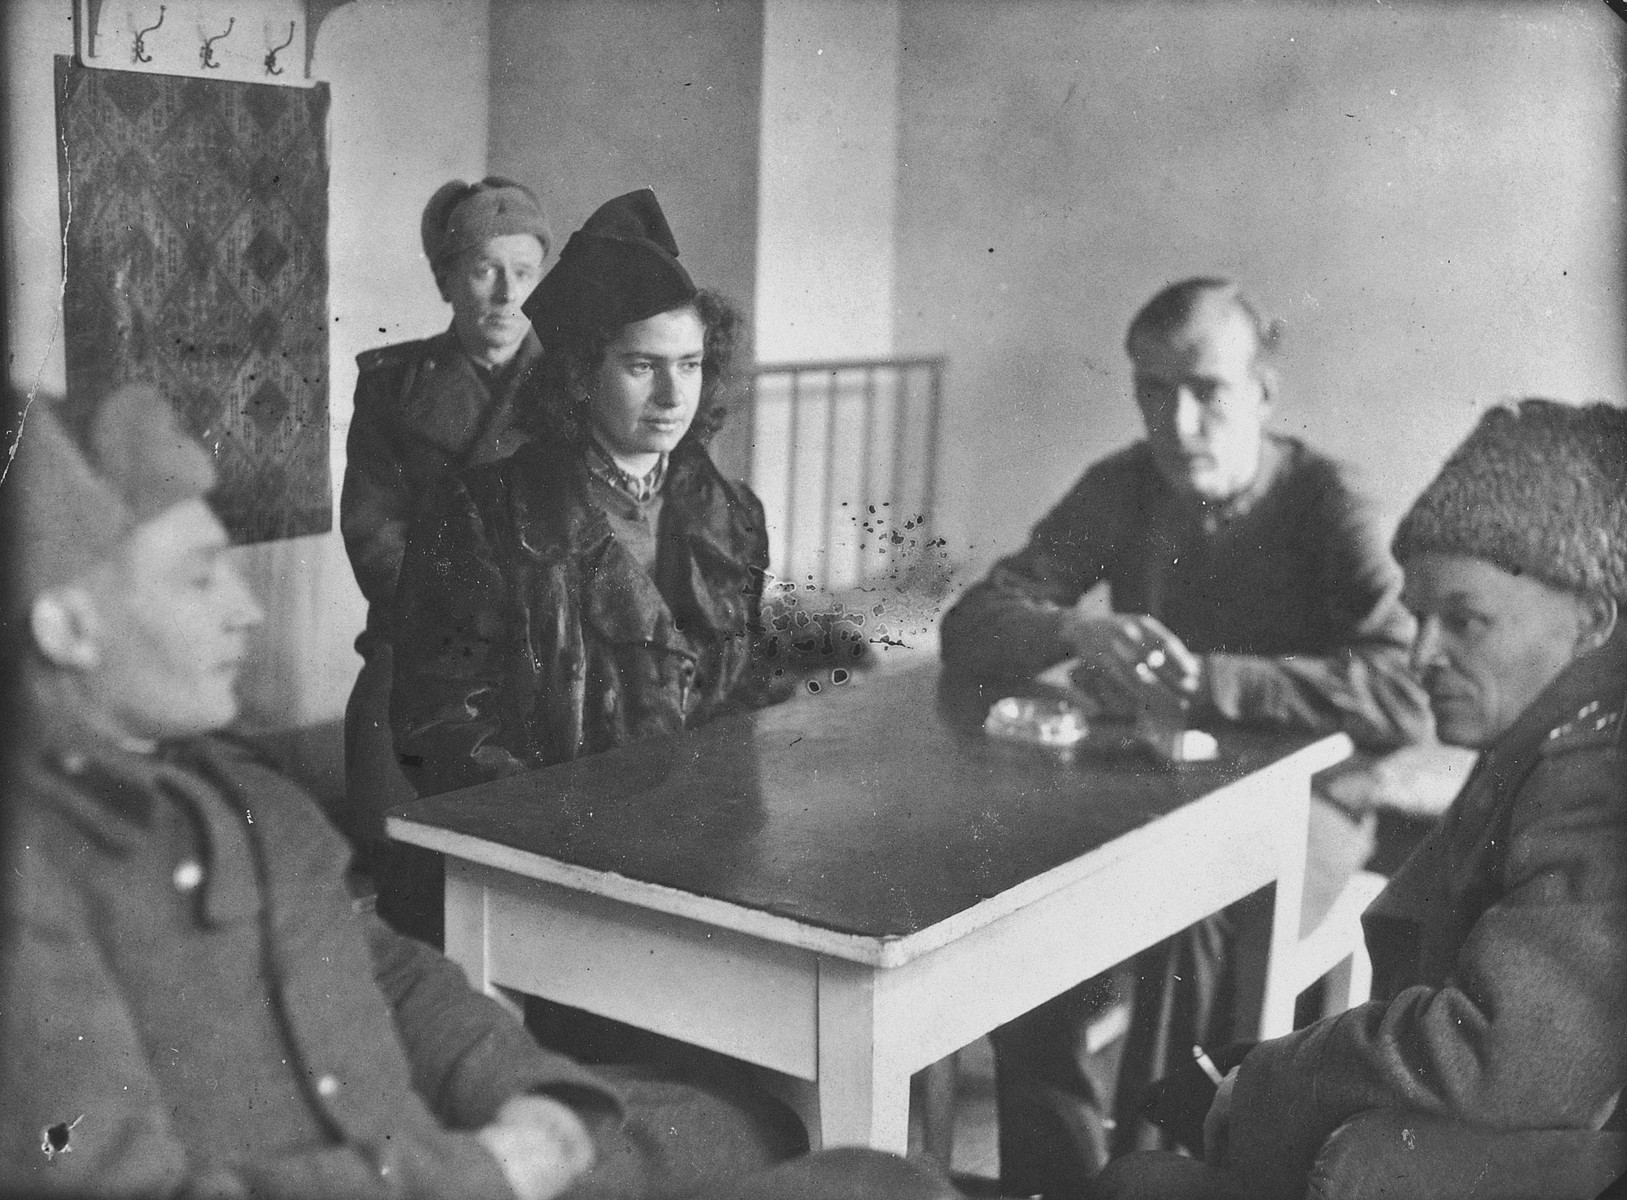 Esther Lurie serves as a translator between freed American POWs and Soviet officers.